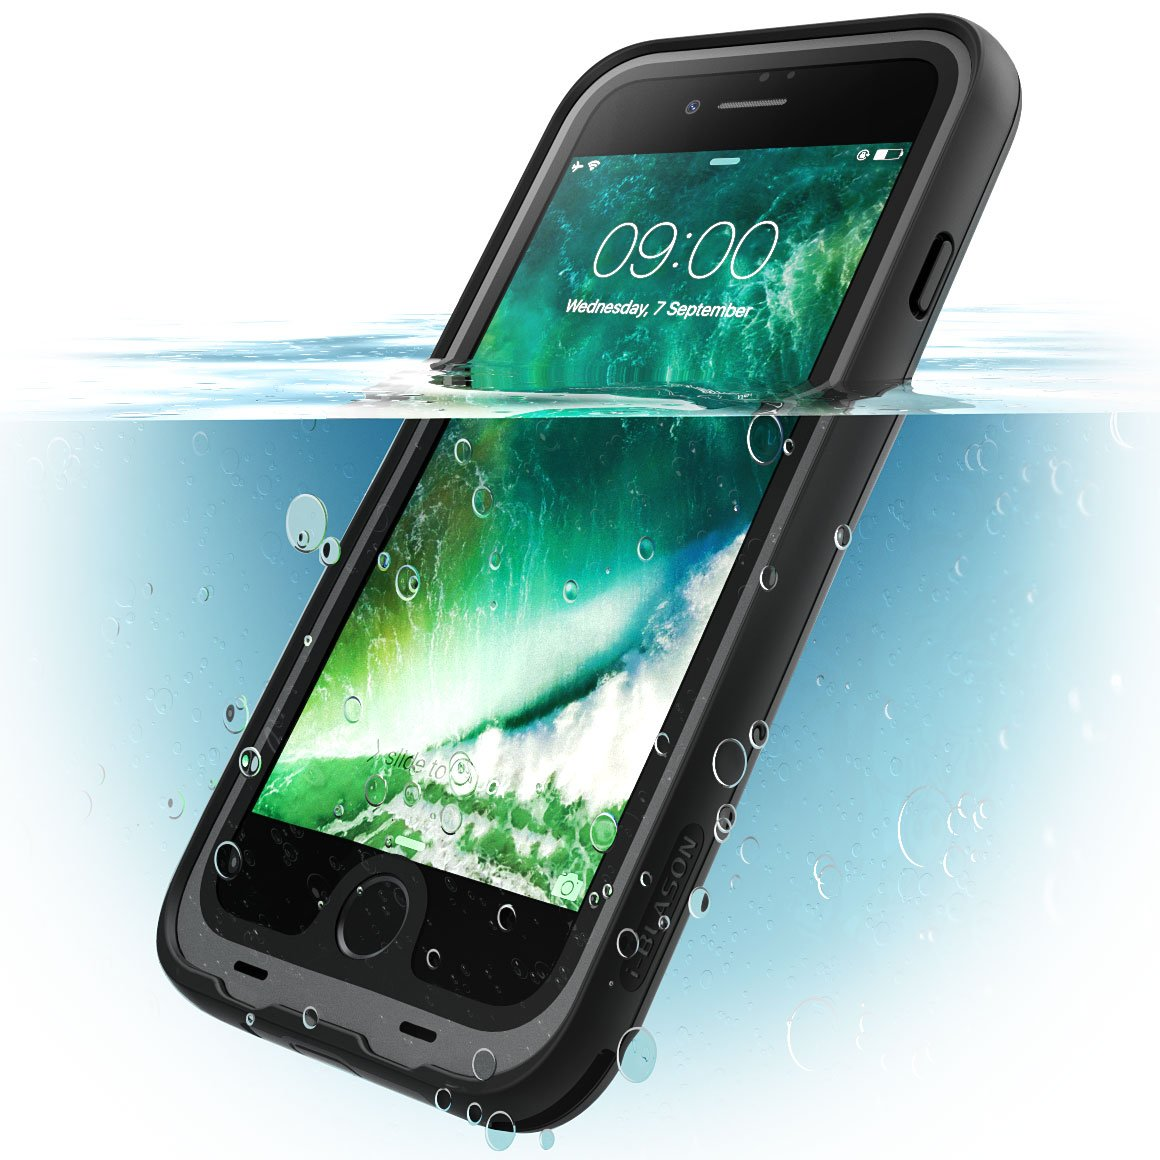 on sale 6308e 9fdfc i-Blason Waterproof Case Designed for iPhone 7 Plus/iPhone 8 Plus,  Full-body Rugged Case with Built-in Screen Protector (Black)